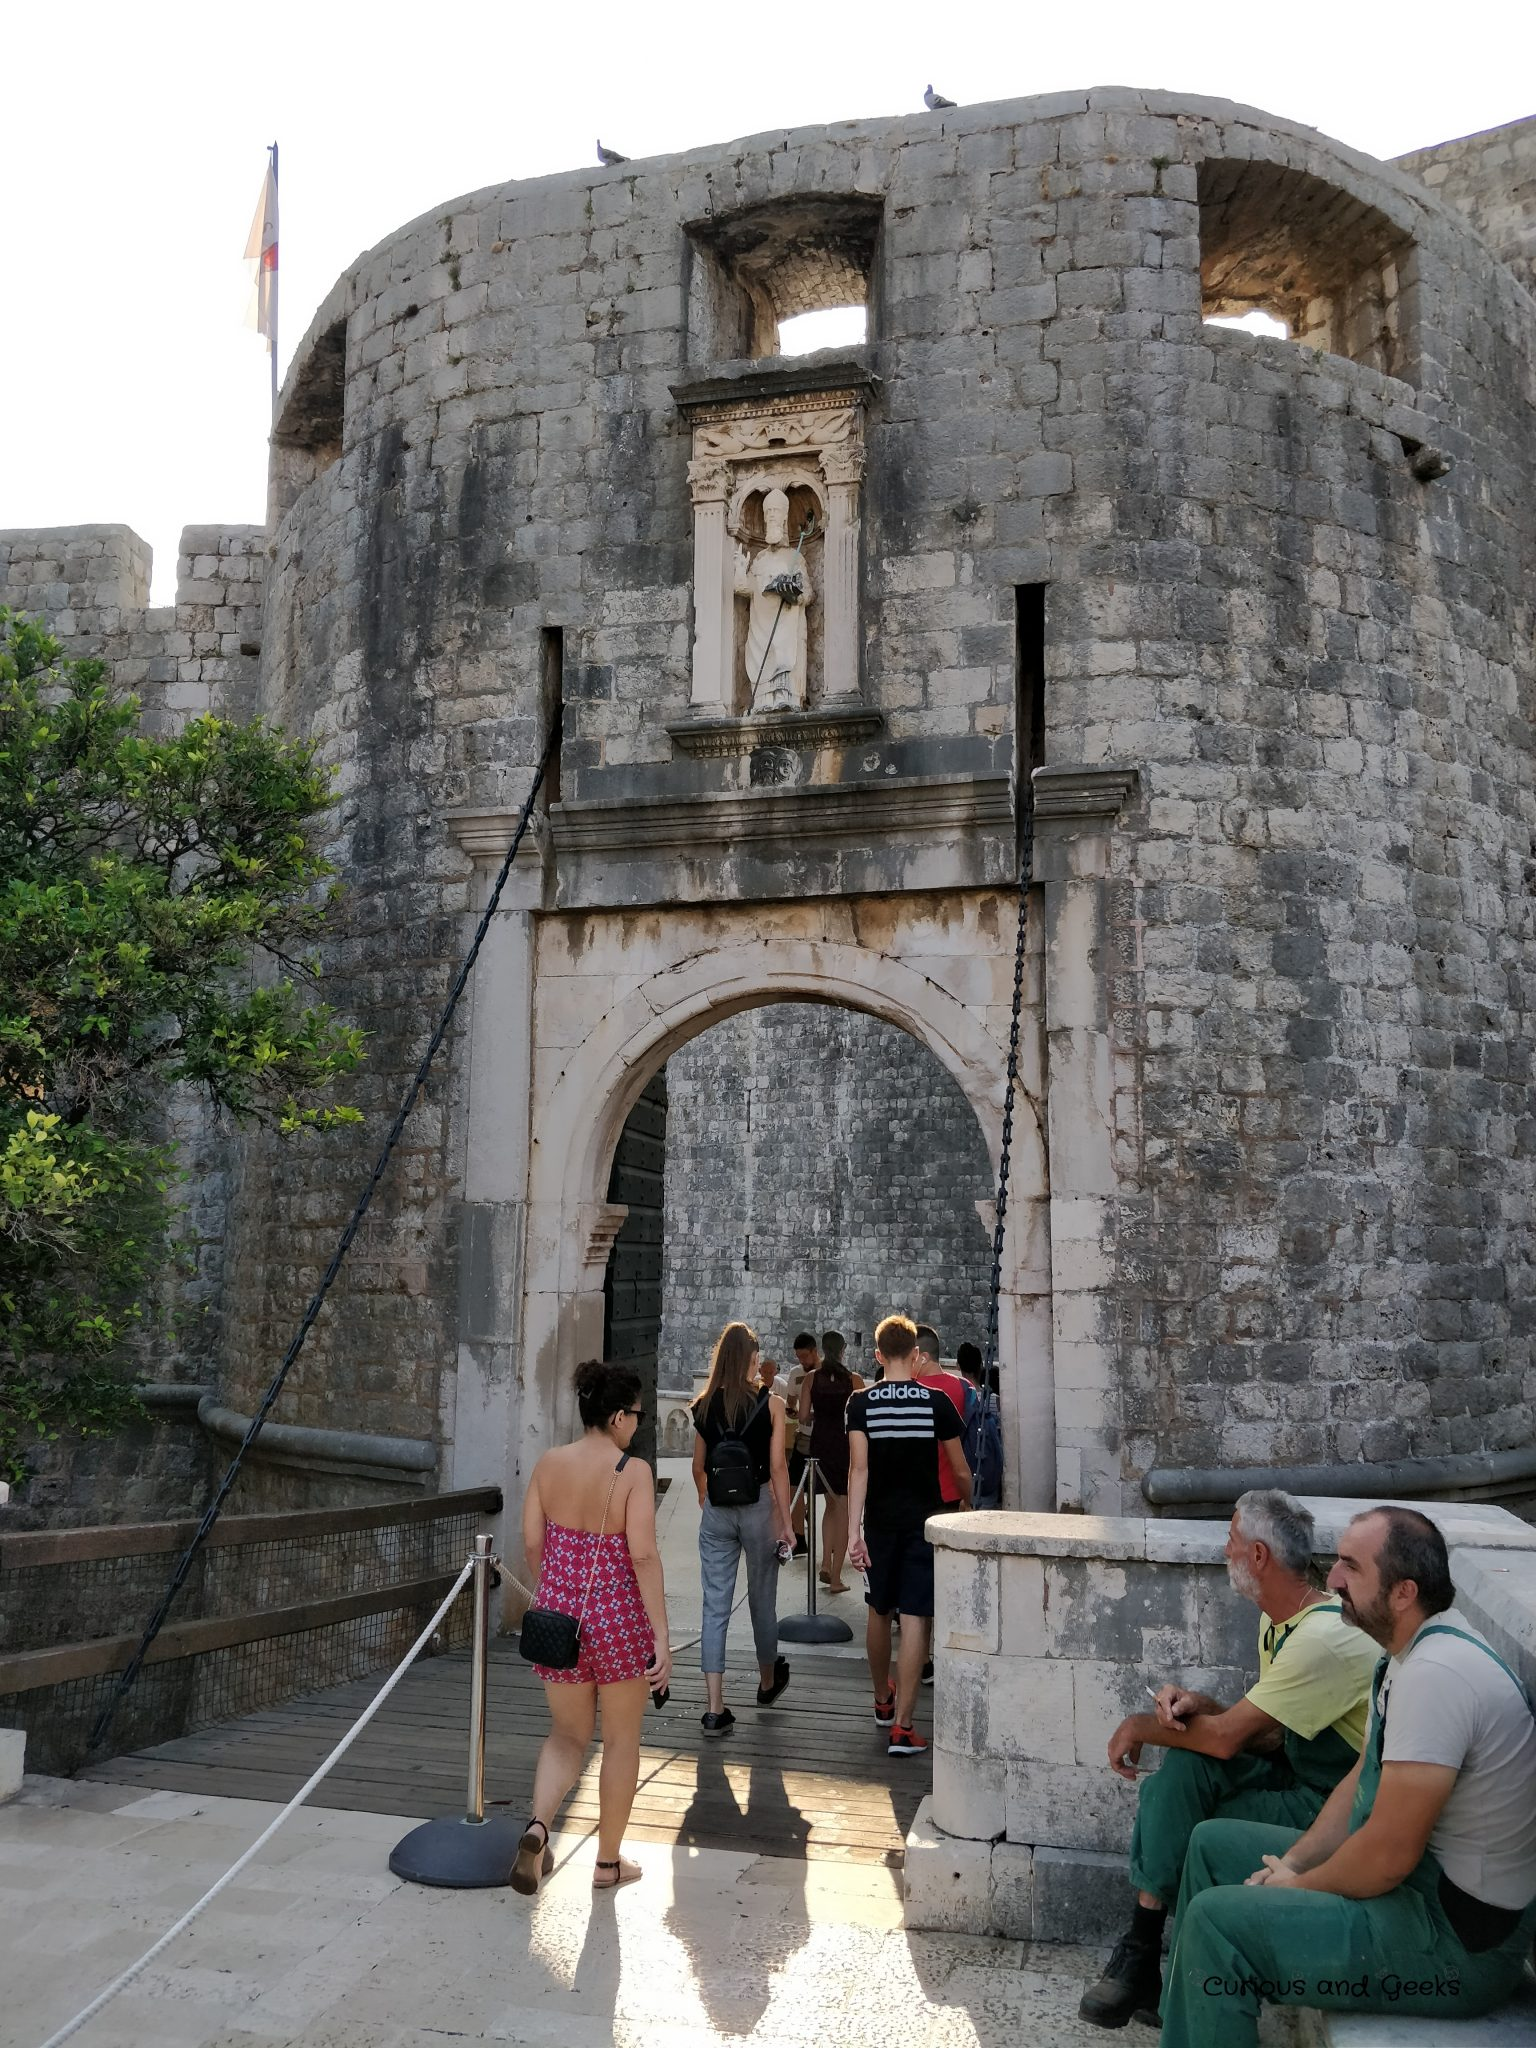 1. Pile 2 - Game of Thrones filming locations in Dubrovnik